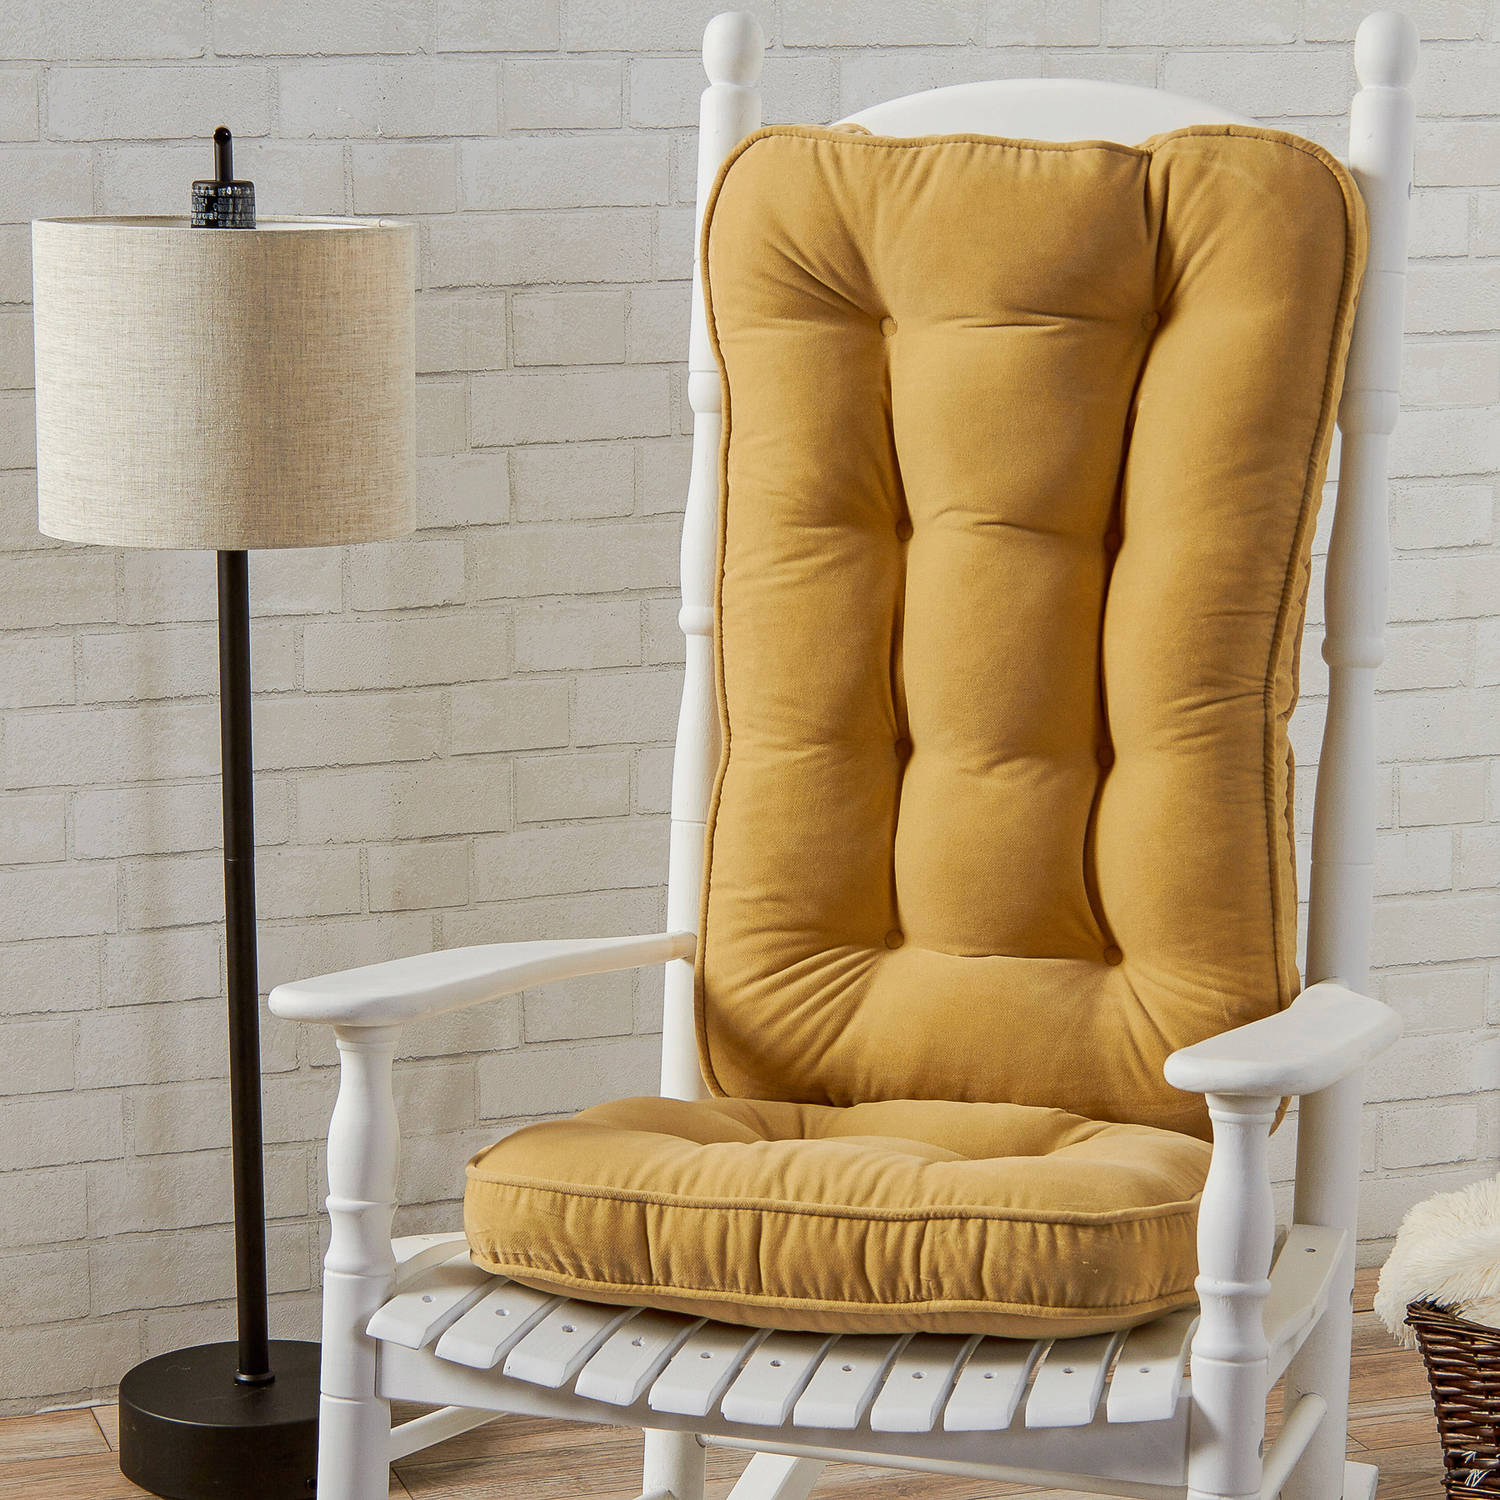 Hyatt Jumbo Rocking Chair Cushion Set Walmart